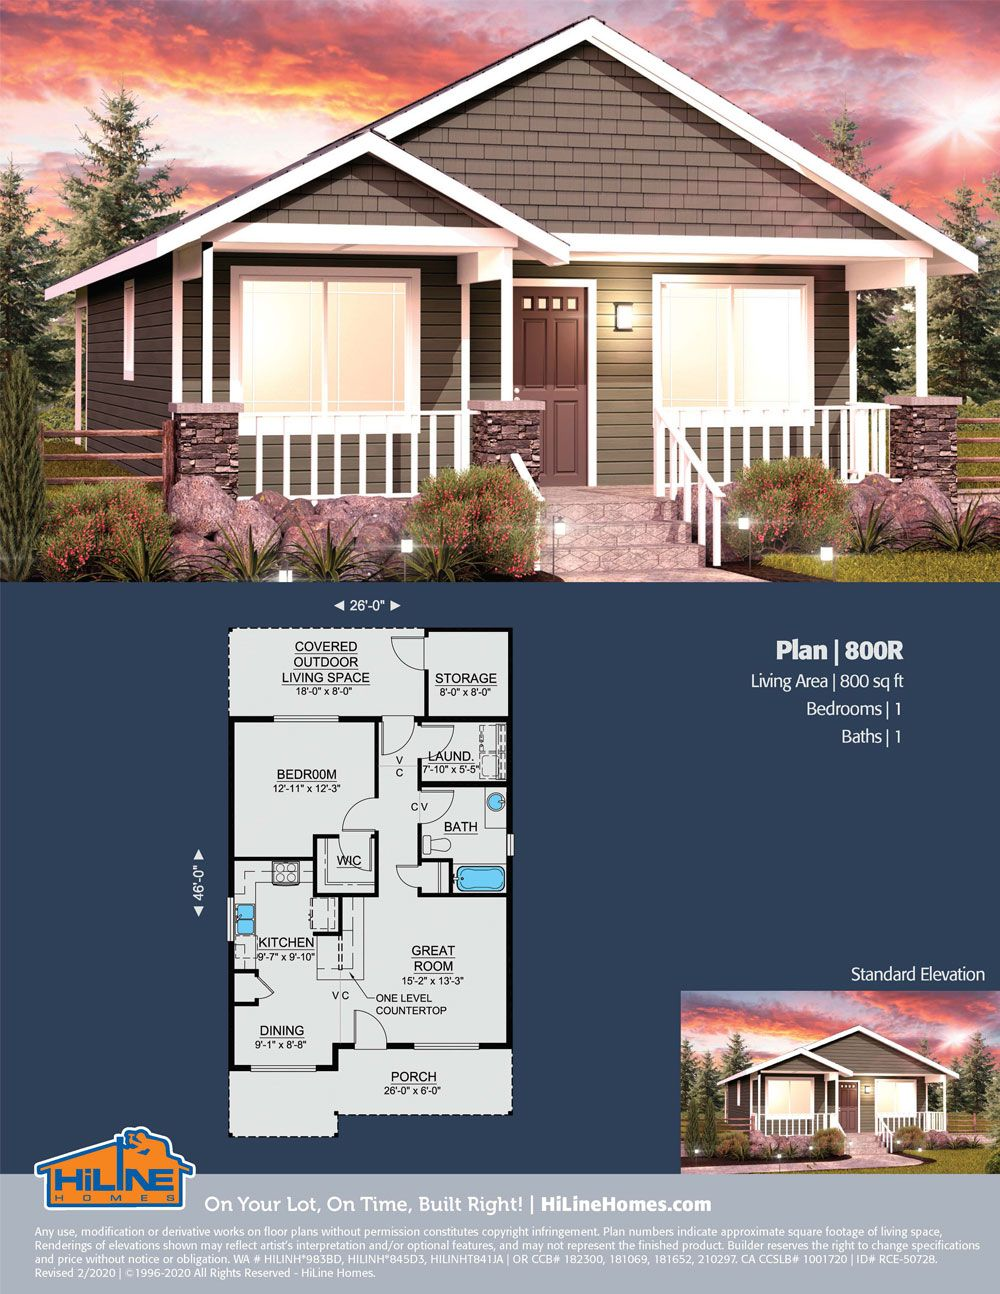 Hiline Homes Plan 800 In 2020 Floor Plans House Plans Great Rooms